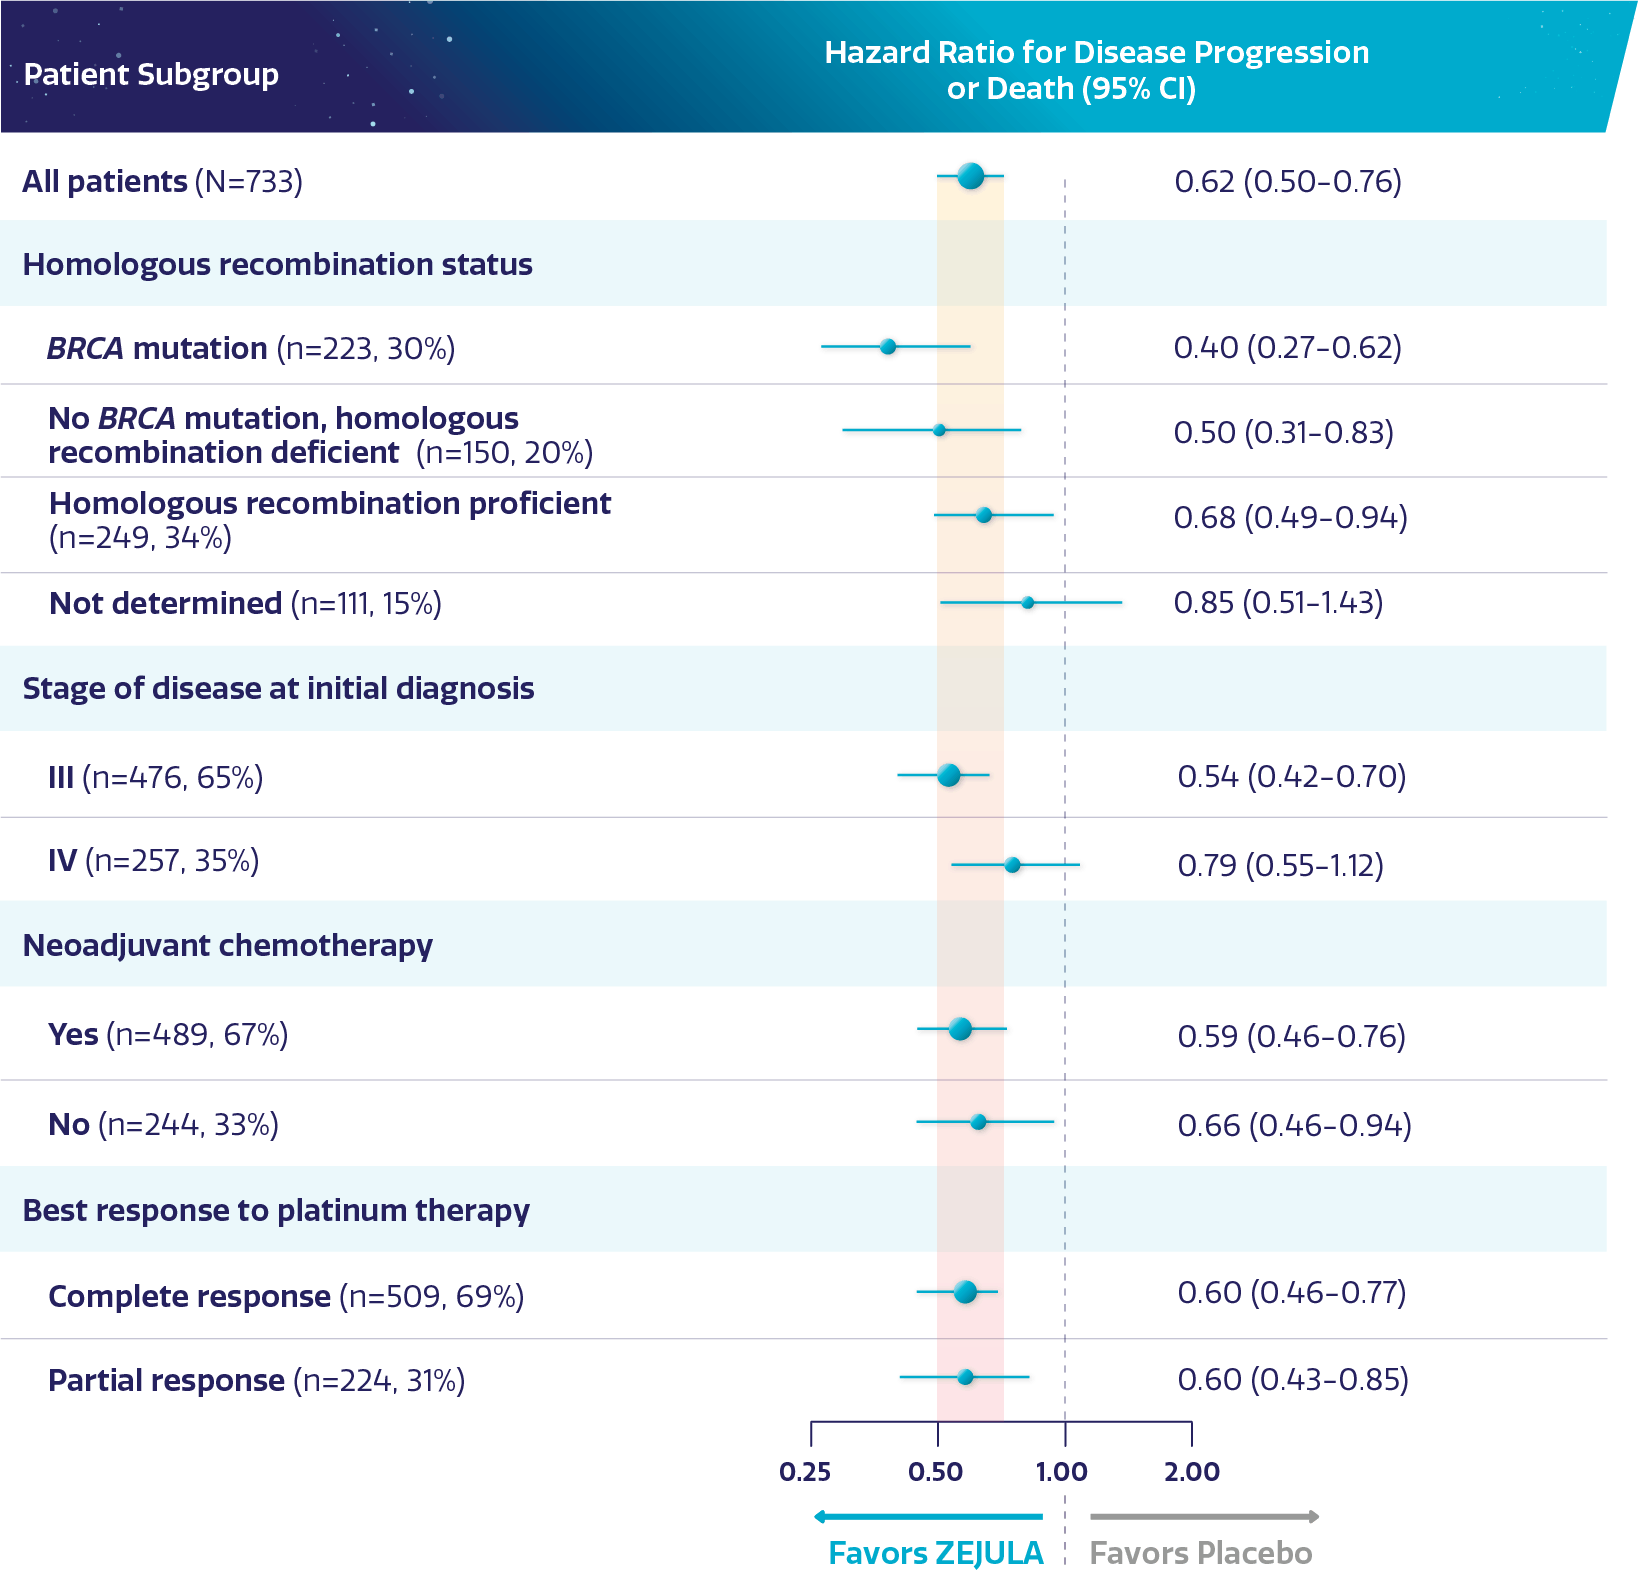 Chart showing patient subgroups, hazard ratio for disease progression or death, and median PFS.